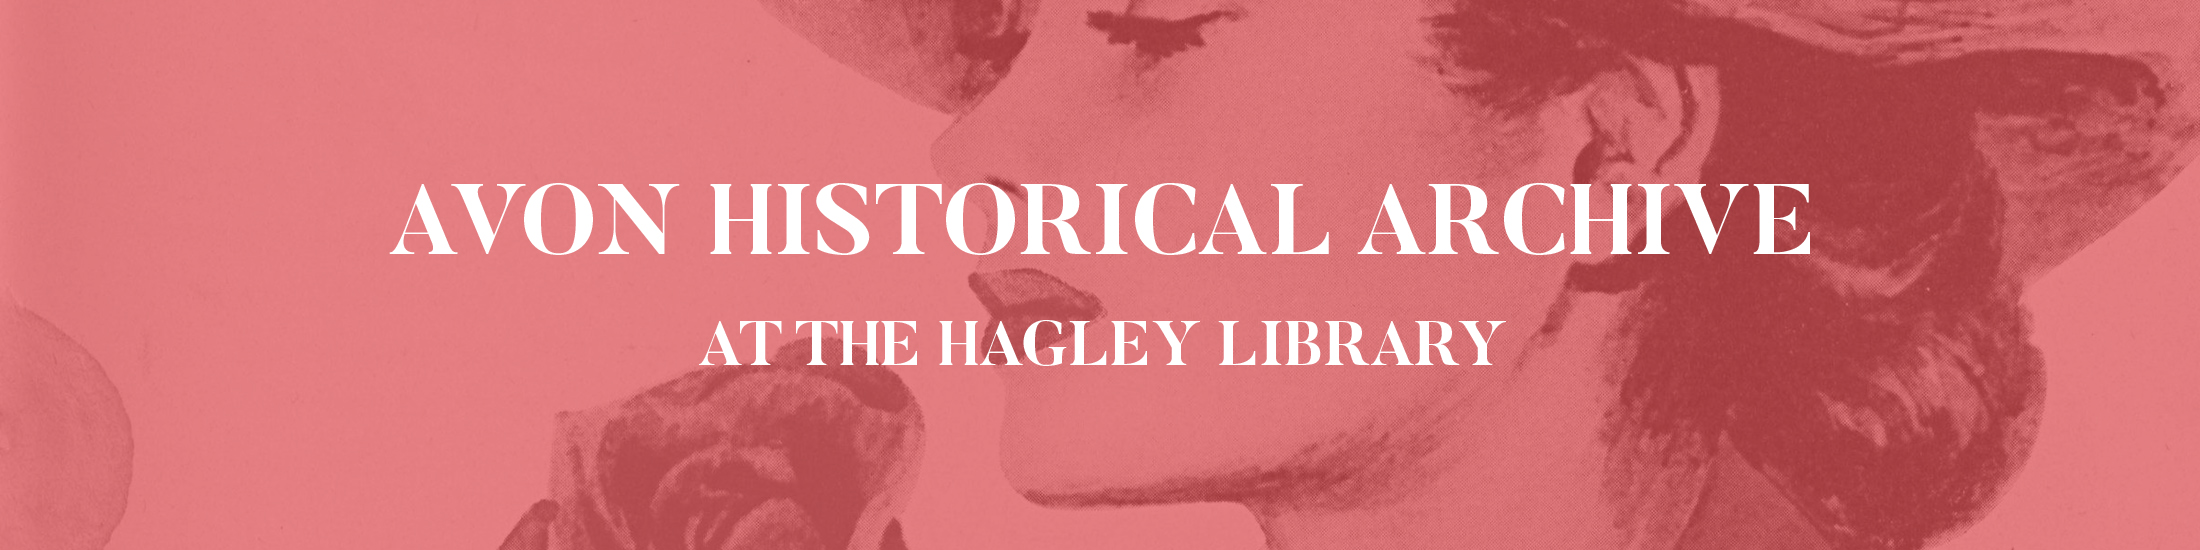 Avon Historical Archive Digital Exhibit at the Hagley Library